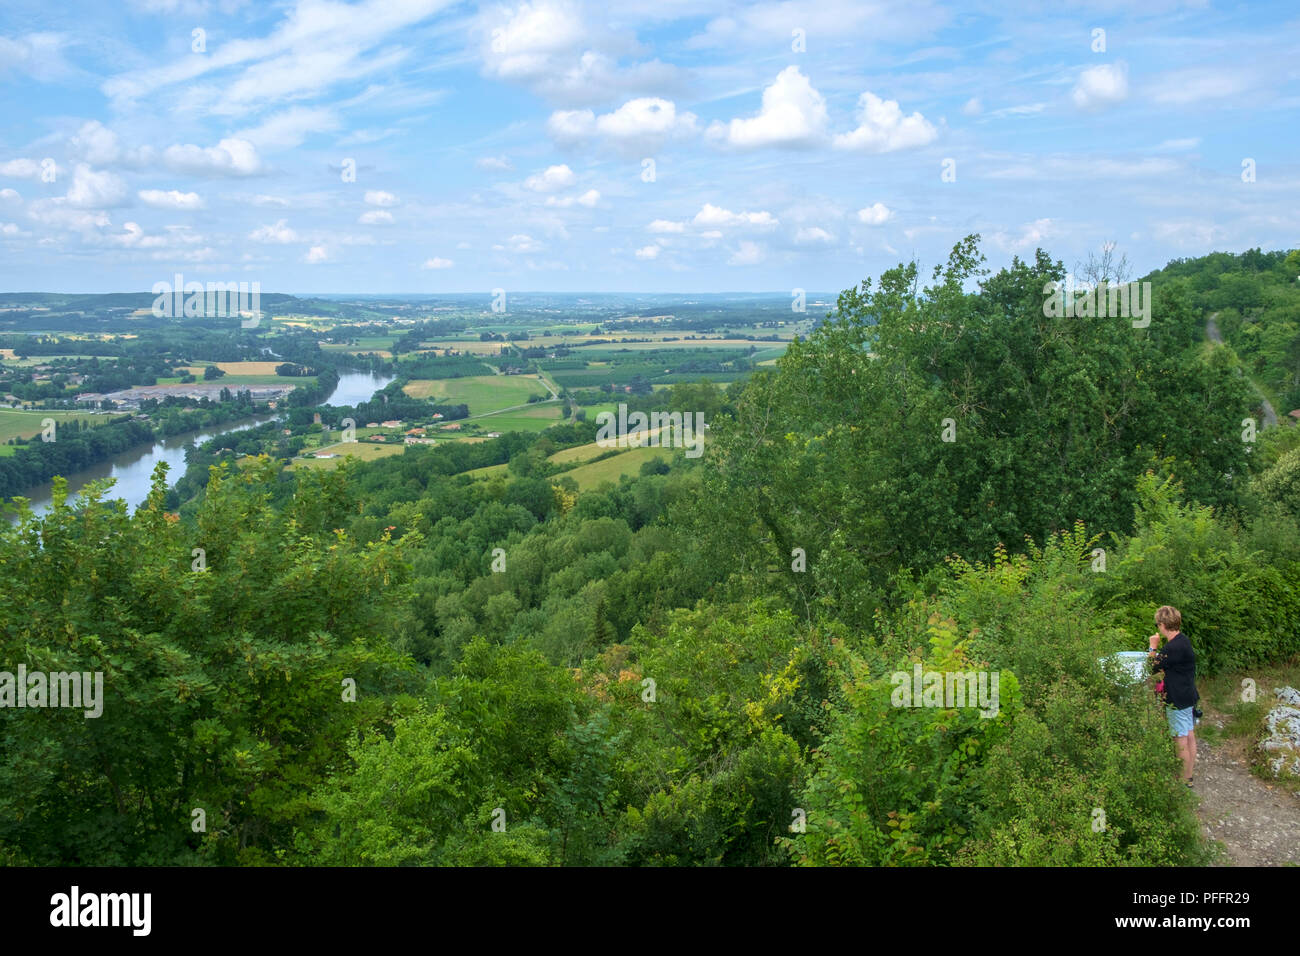 Penne d'Agenais, France - 14th June 2018: In early summer sunshine a woman considers the view over the Lot River and Valley from hilltop Penne d'Agenais  in rural Lot et Garonne, France - Stock Image